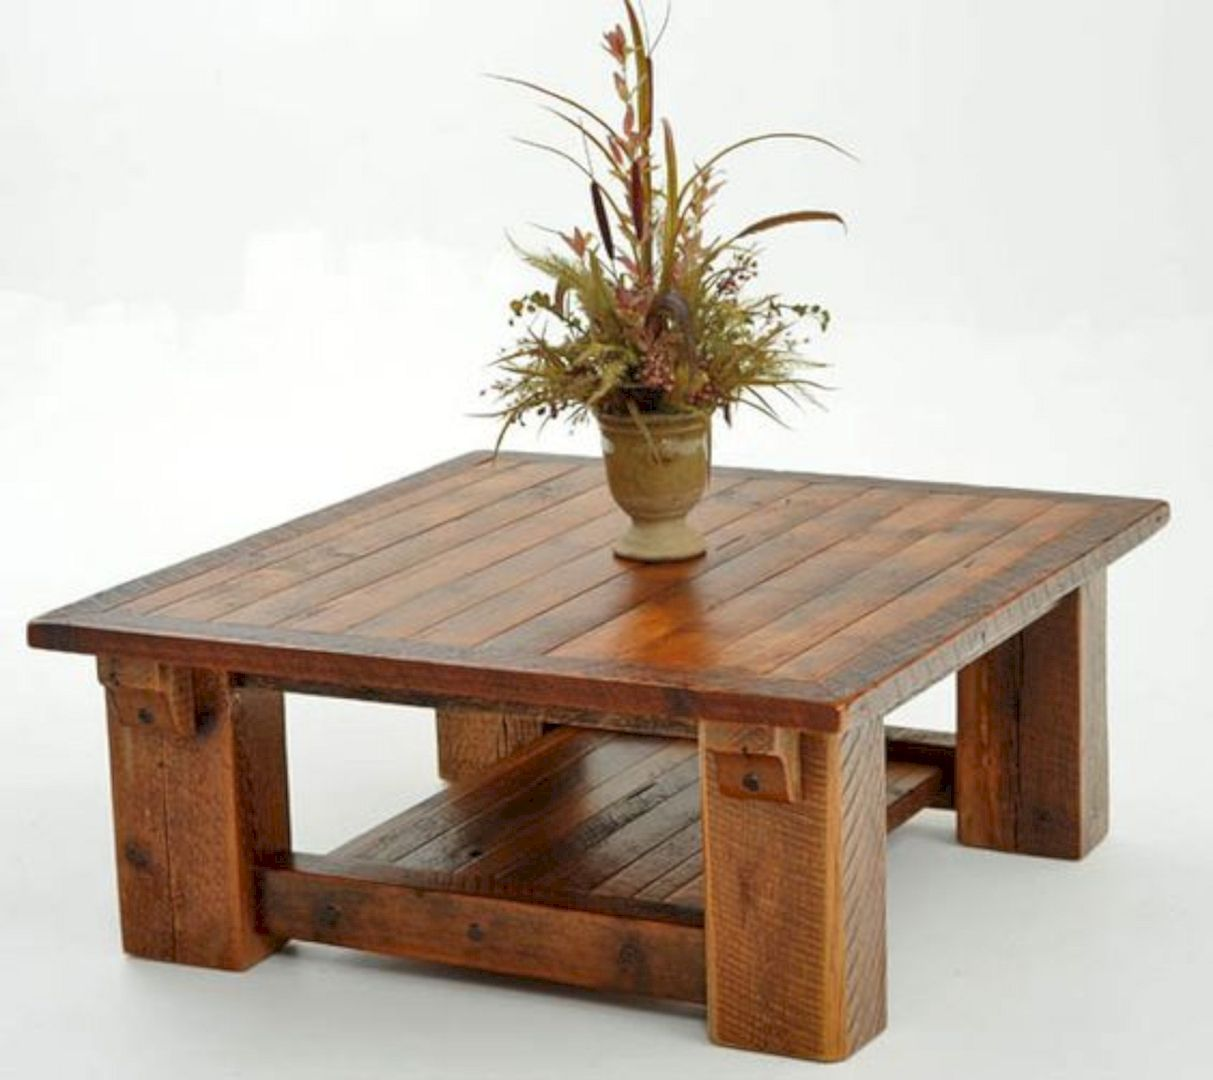 Rustic Pine Toung And Groove Interior Design: 16 Creative Furniture Ideas Made Of Barnwoods